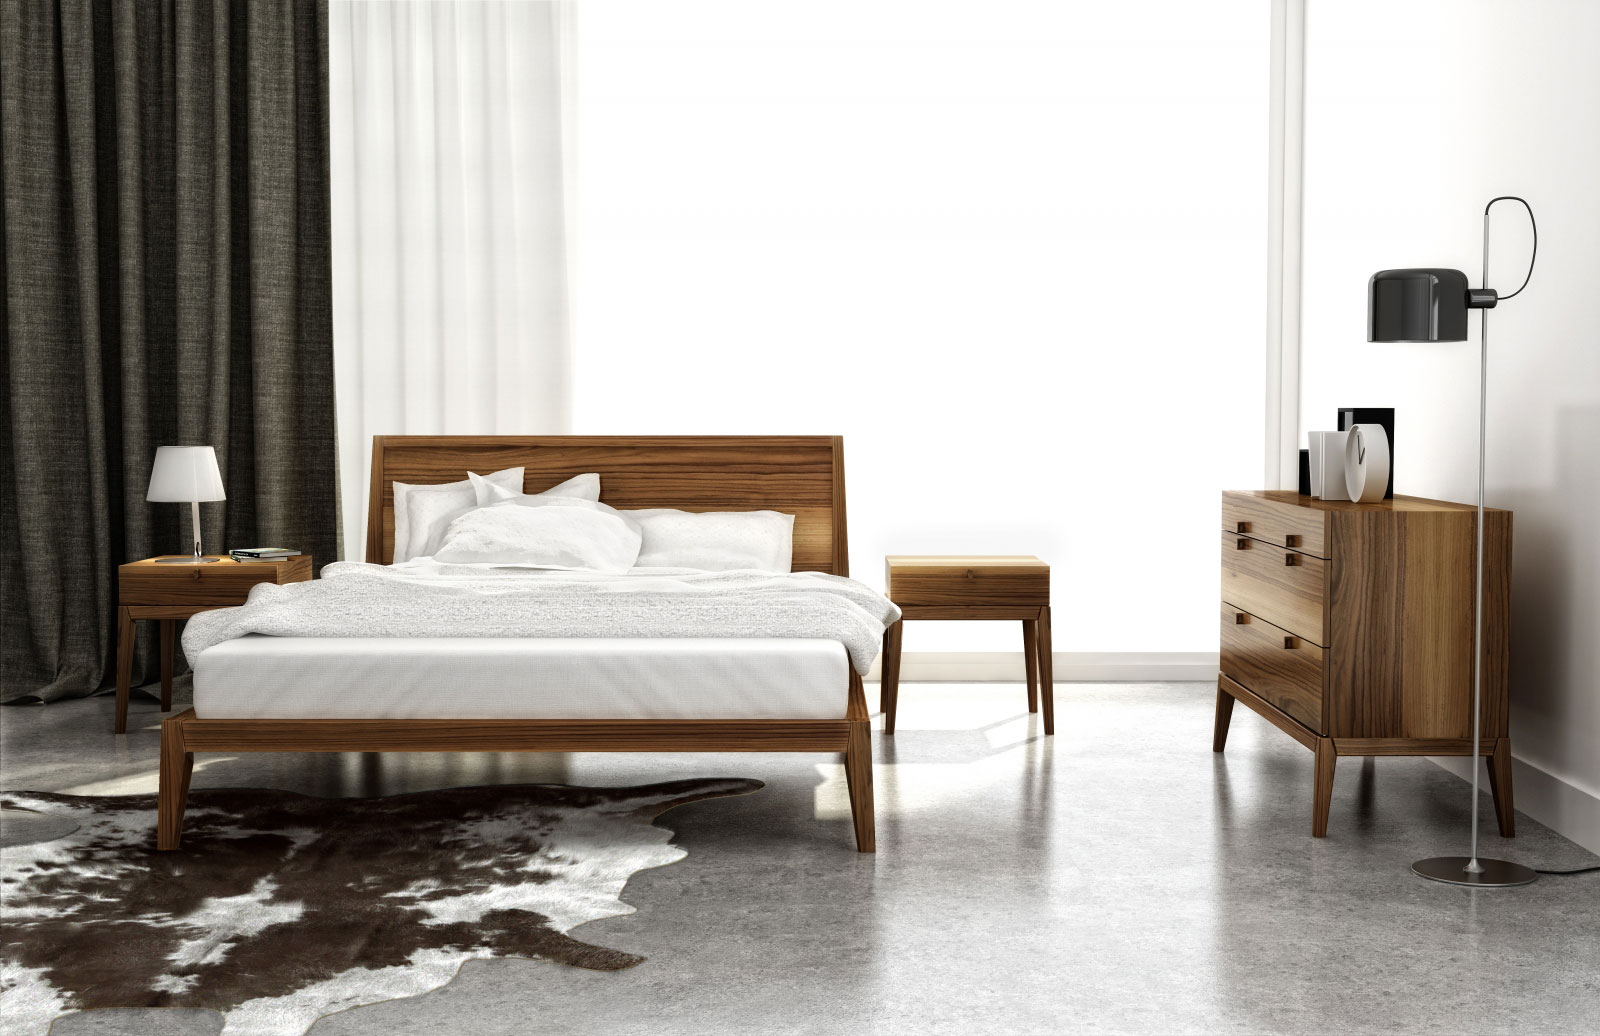 Canadian Bedroom Furniture Manufacturers Up Sleeping Moment